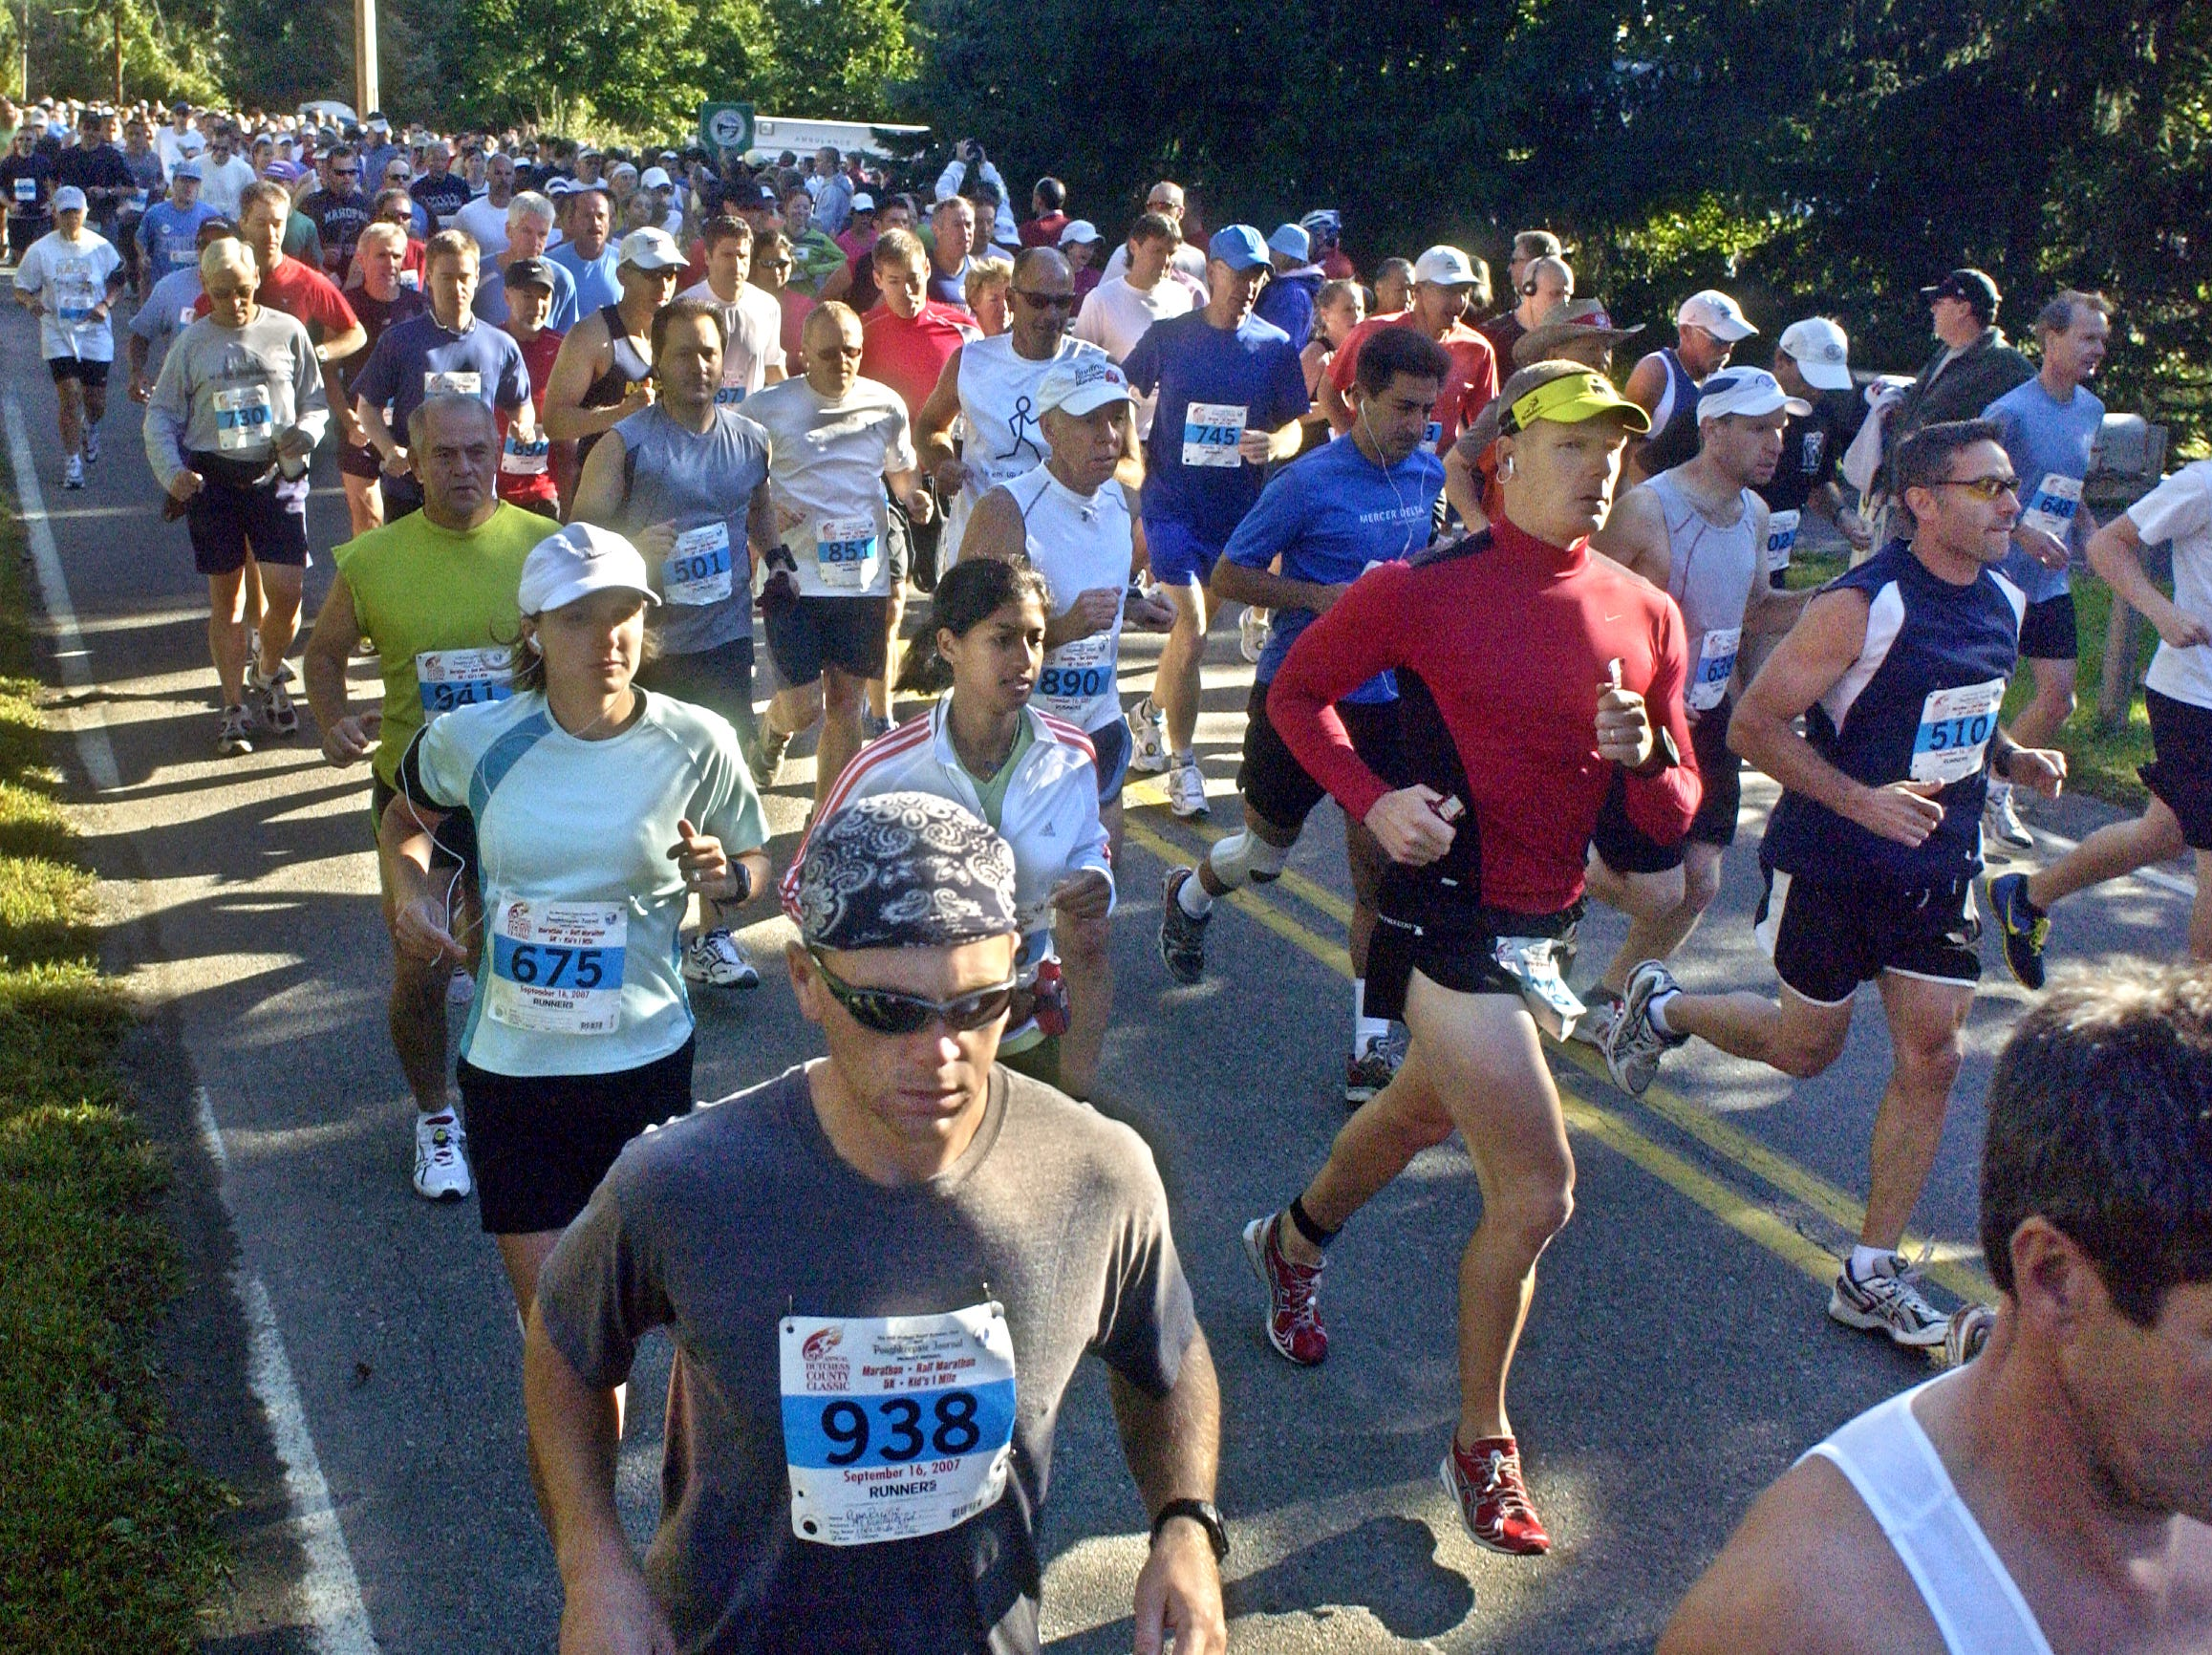 This photo from Sept. 16, 2007 shows the final running of the Dutchess County Classic's marathon race.